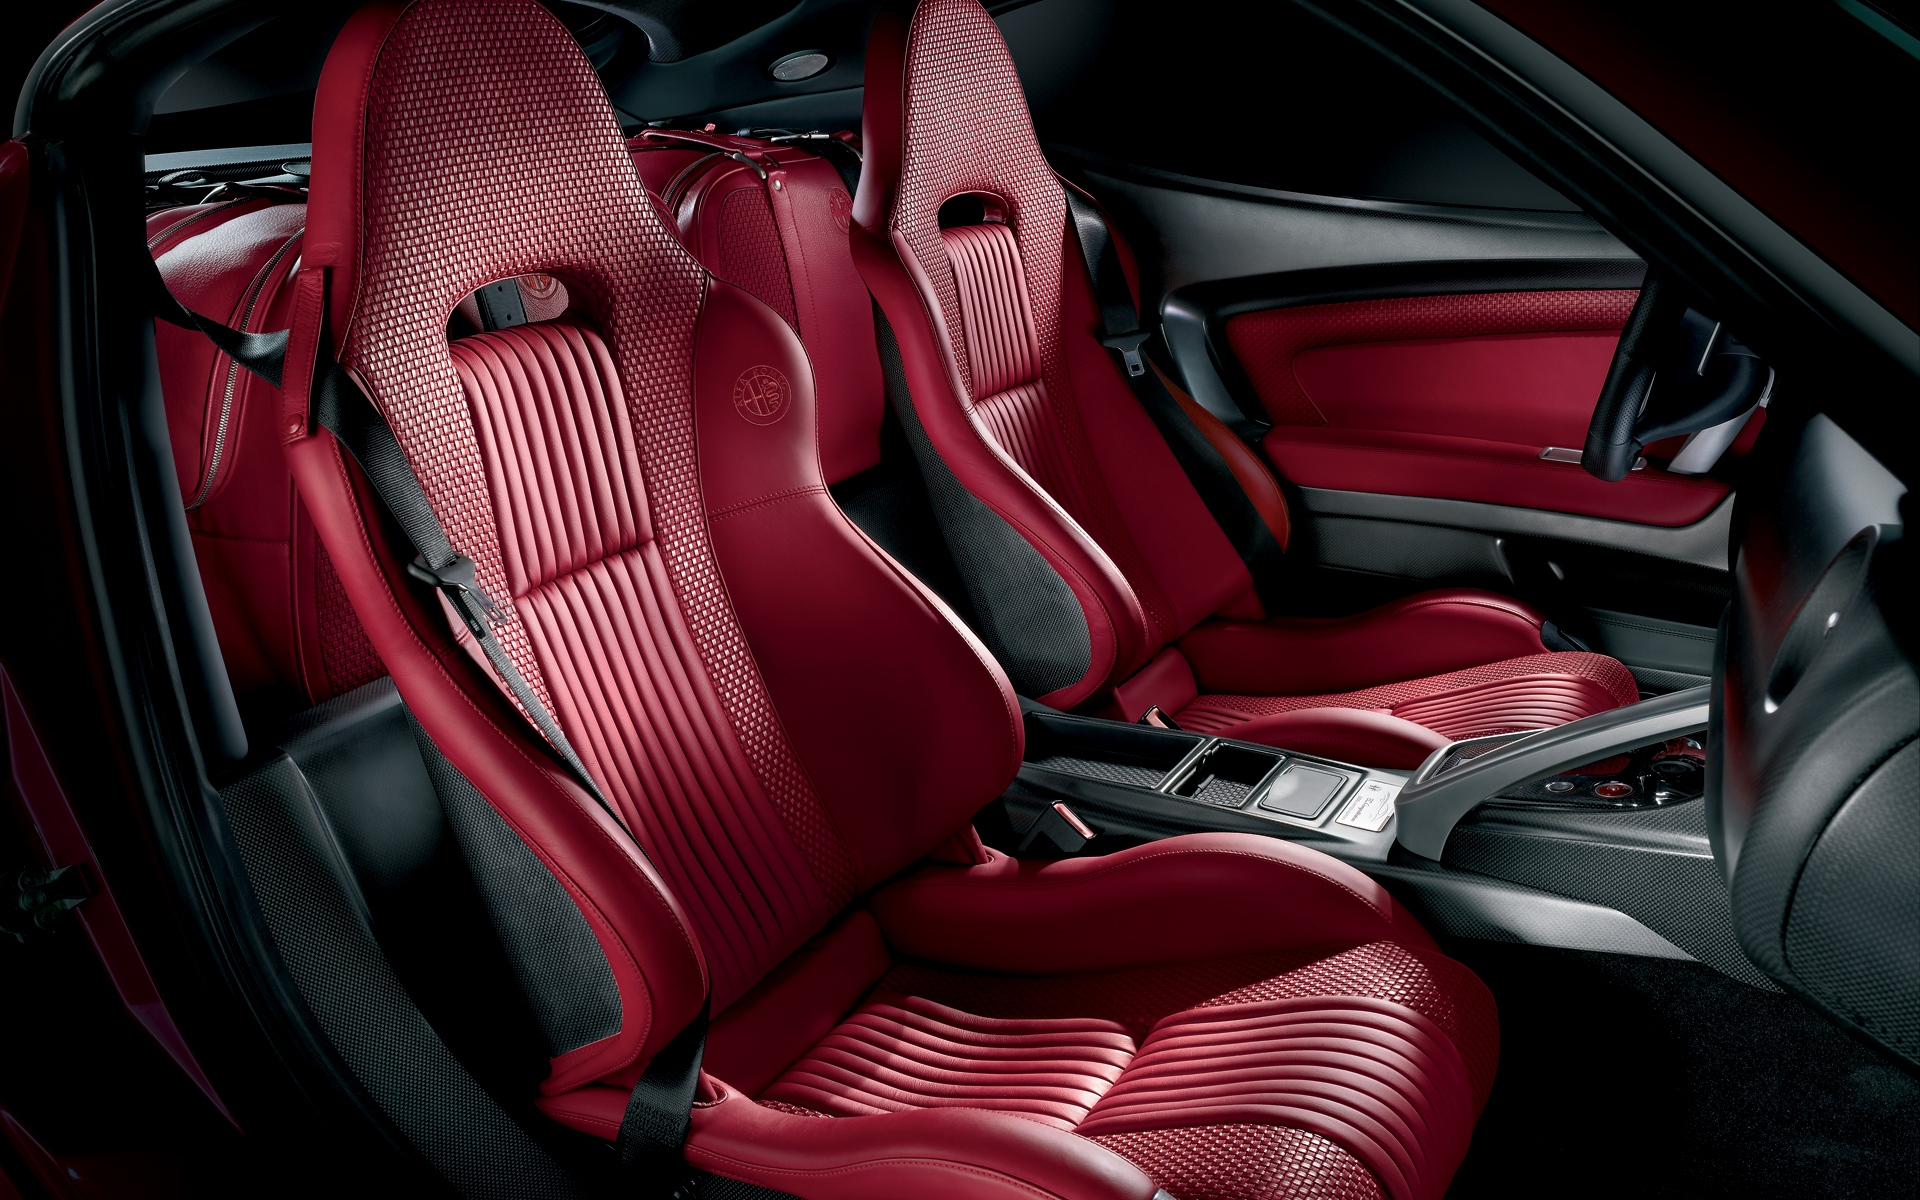 Wallpapere Alfa Romeo 8C interior | Alfa Romeo 8C interior wallpapers